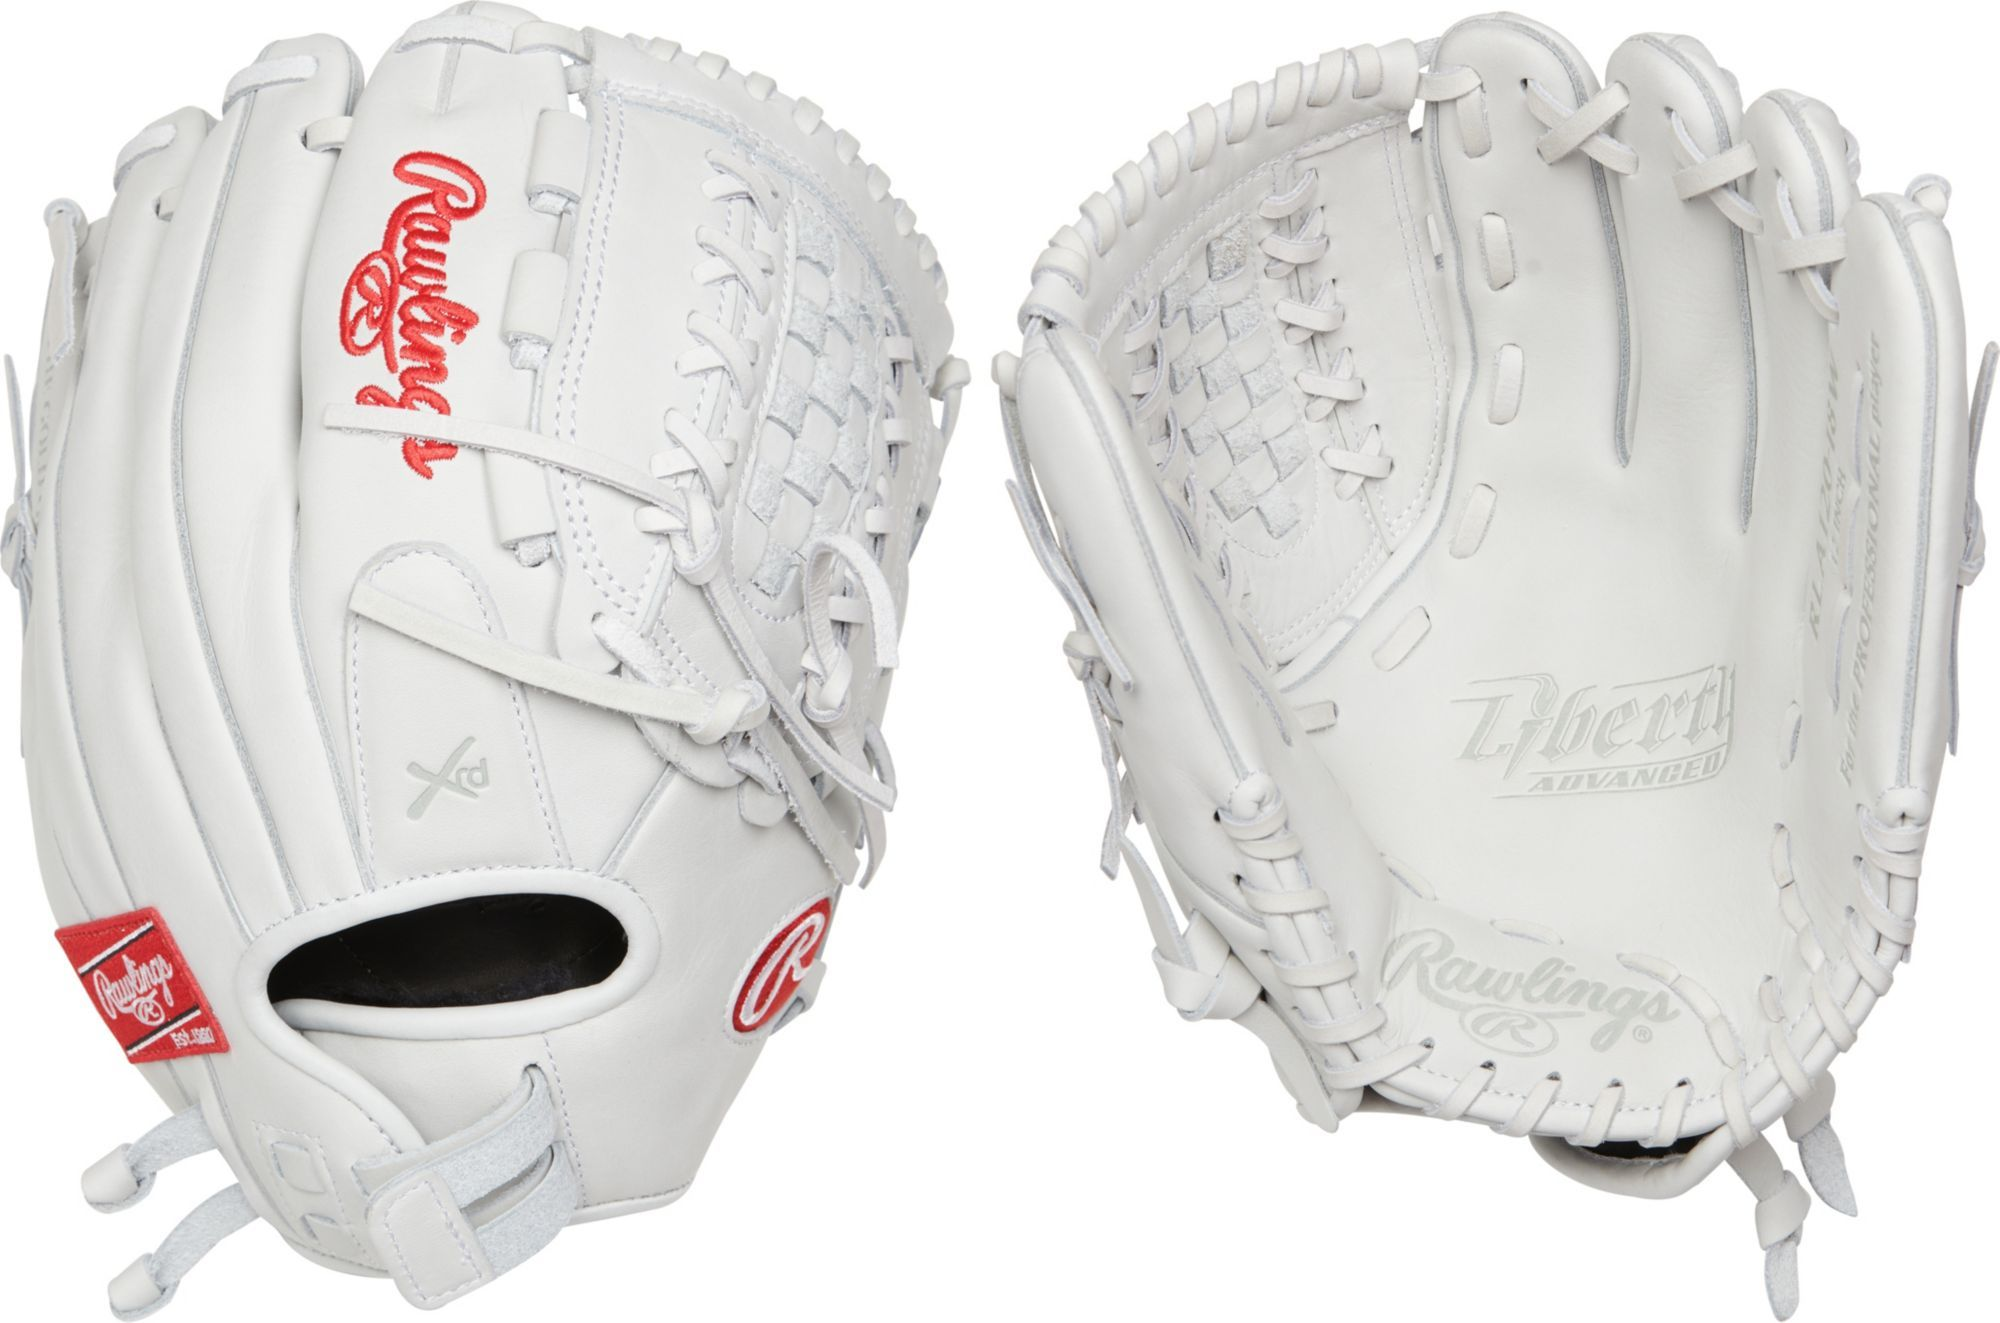 Rawlings 12 Liberty Advanced Series Fastpitch Glove Rawlings Fastpitch Softball Gloves